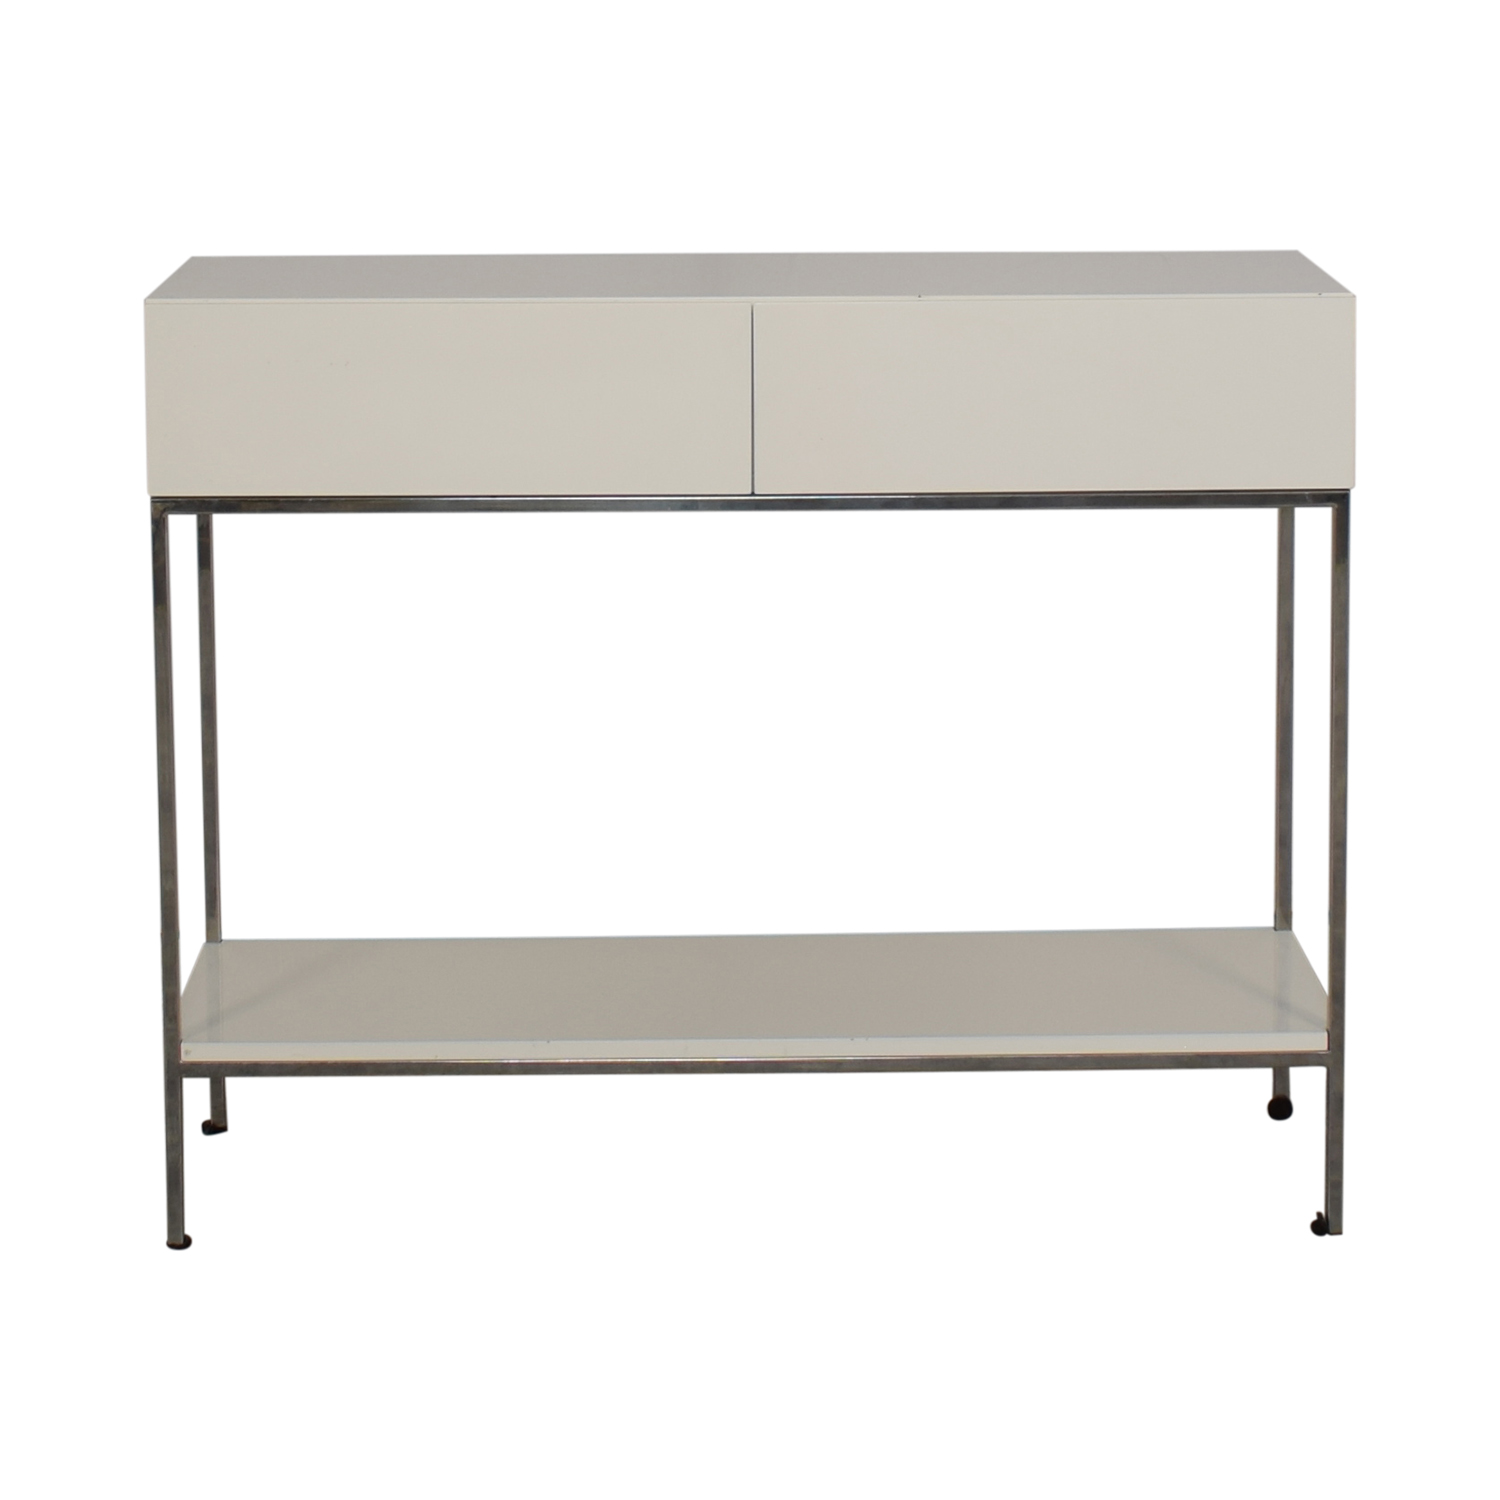 West Elm West Elm Lacquer Storage Console on sale